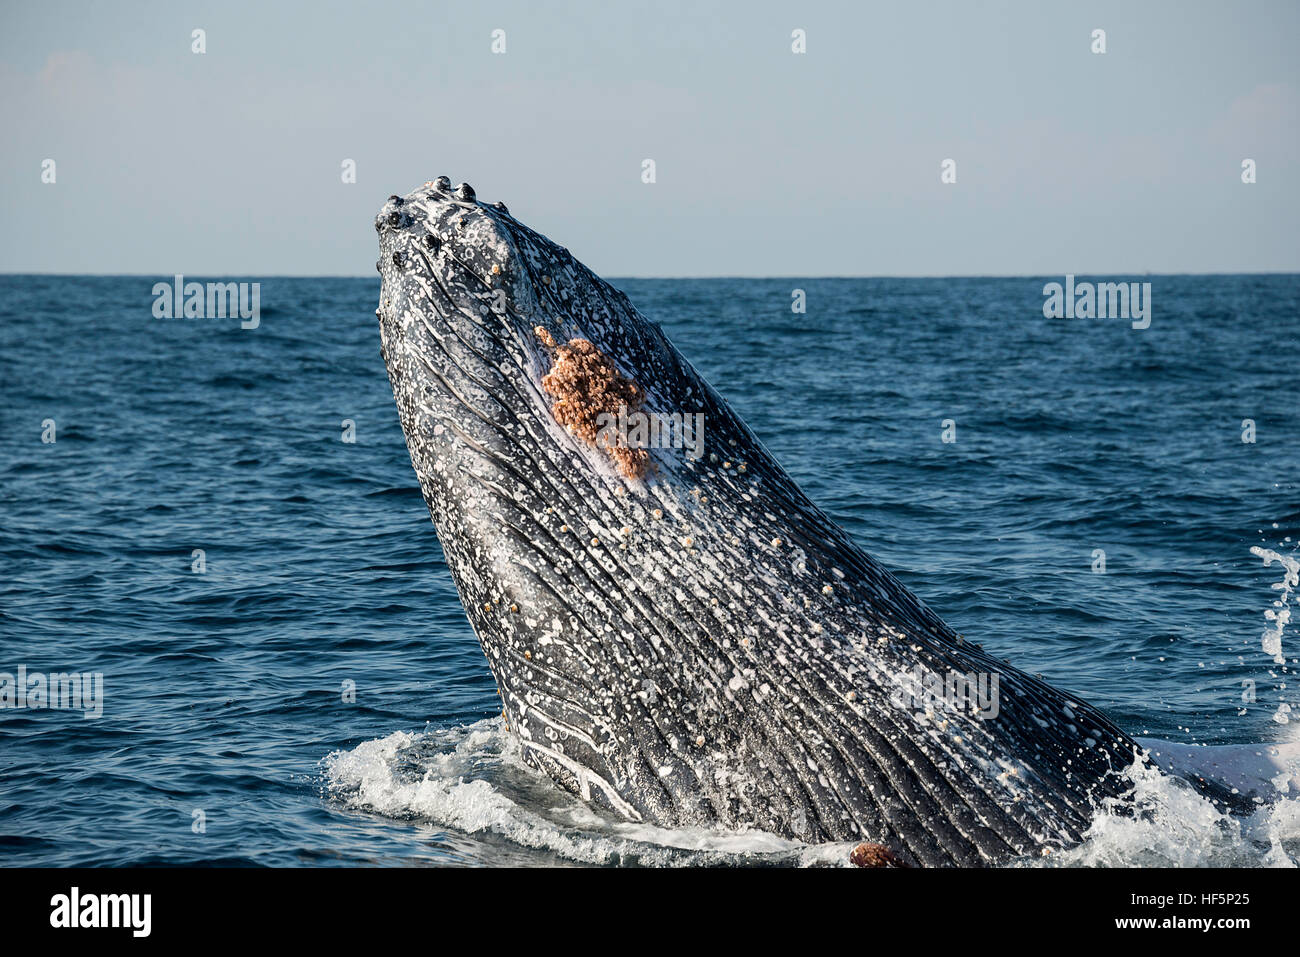 Humpback whale breaching off the east coast of South Africa during the winter months when they are migrating north - Stock Image